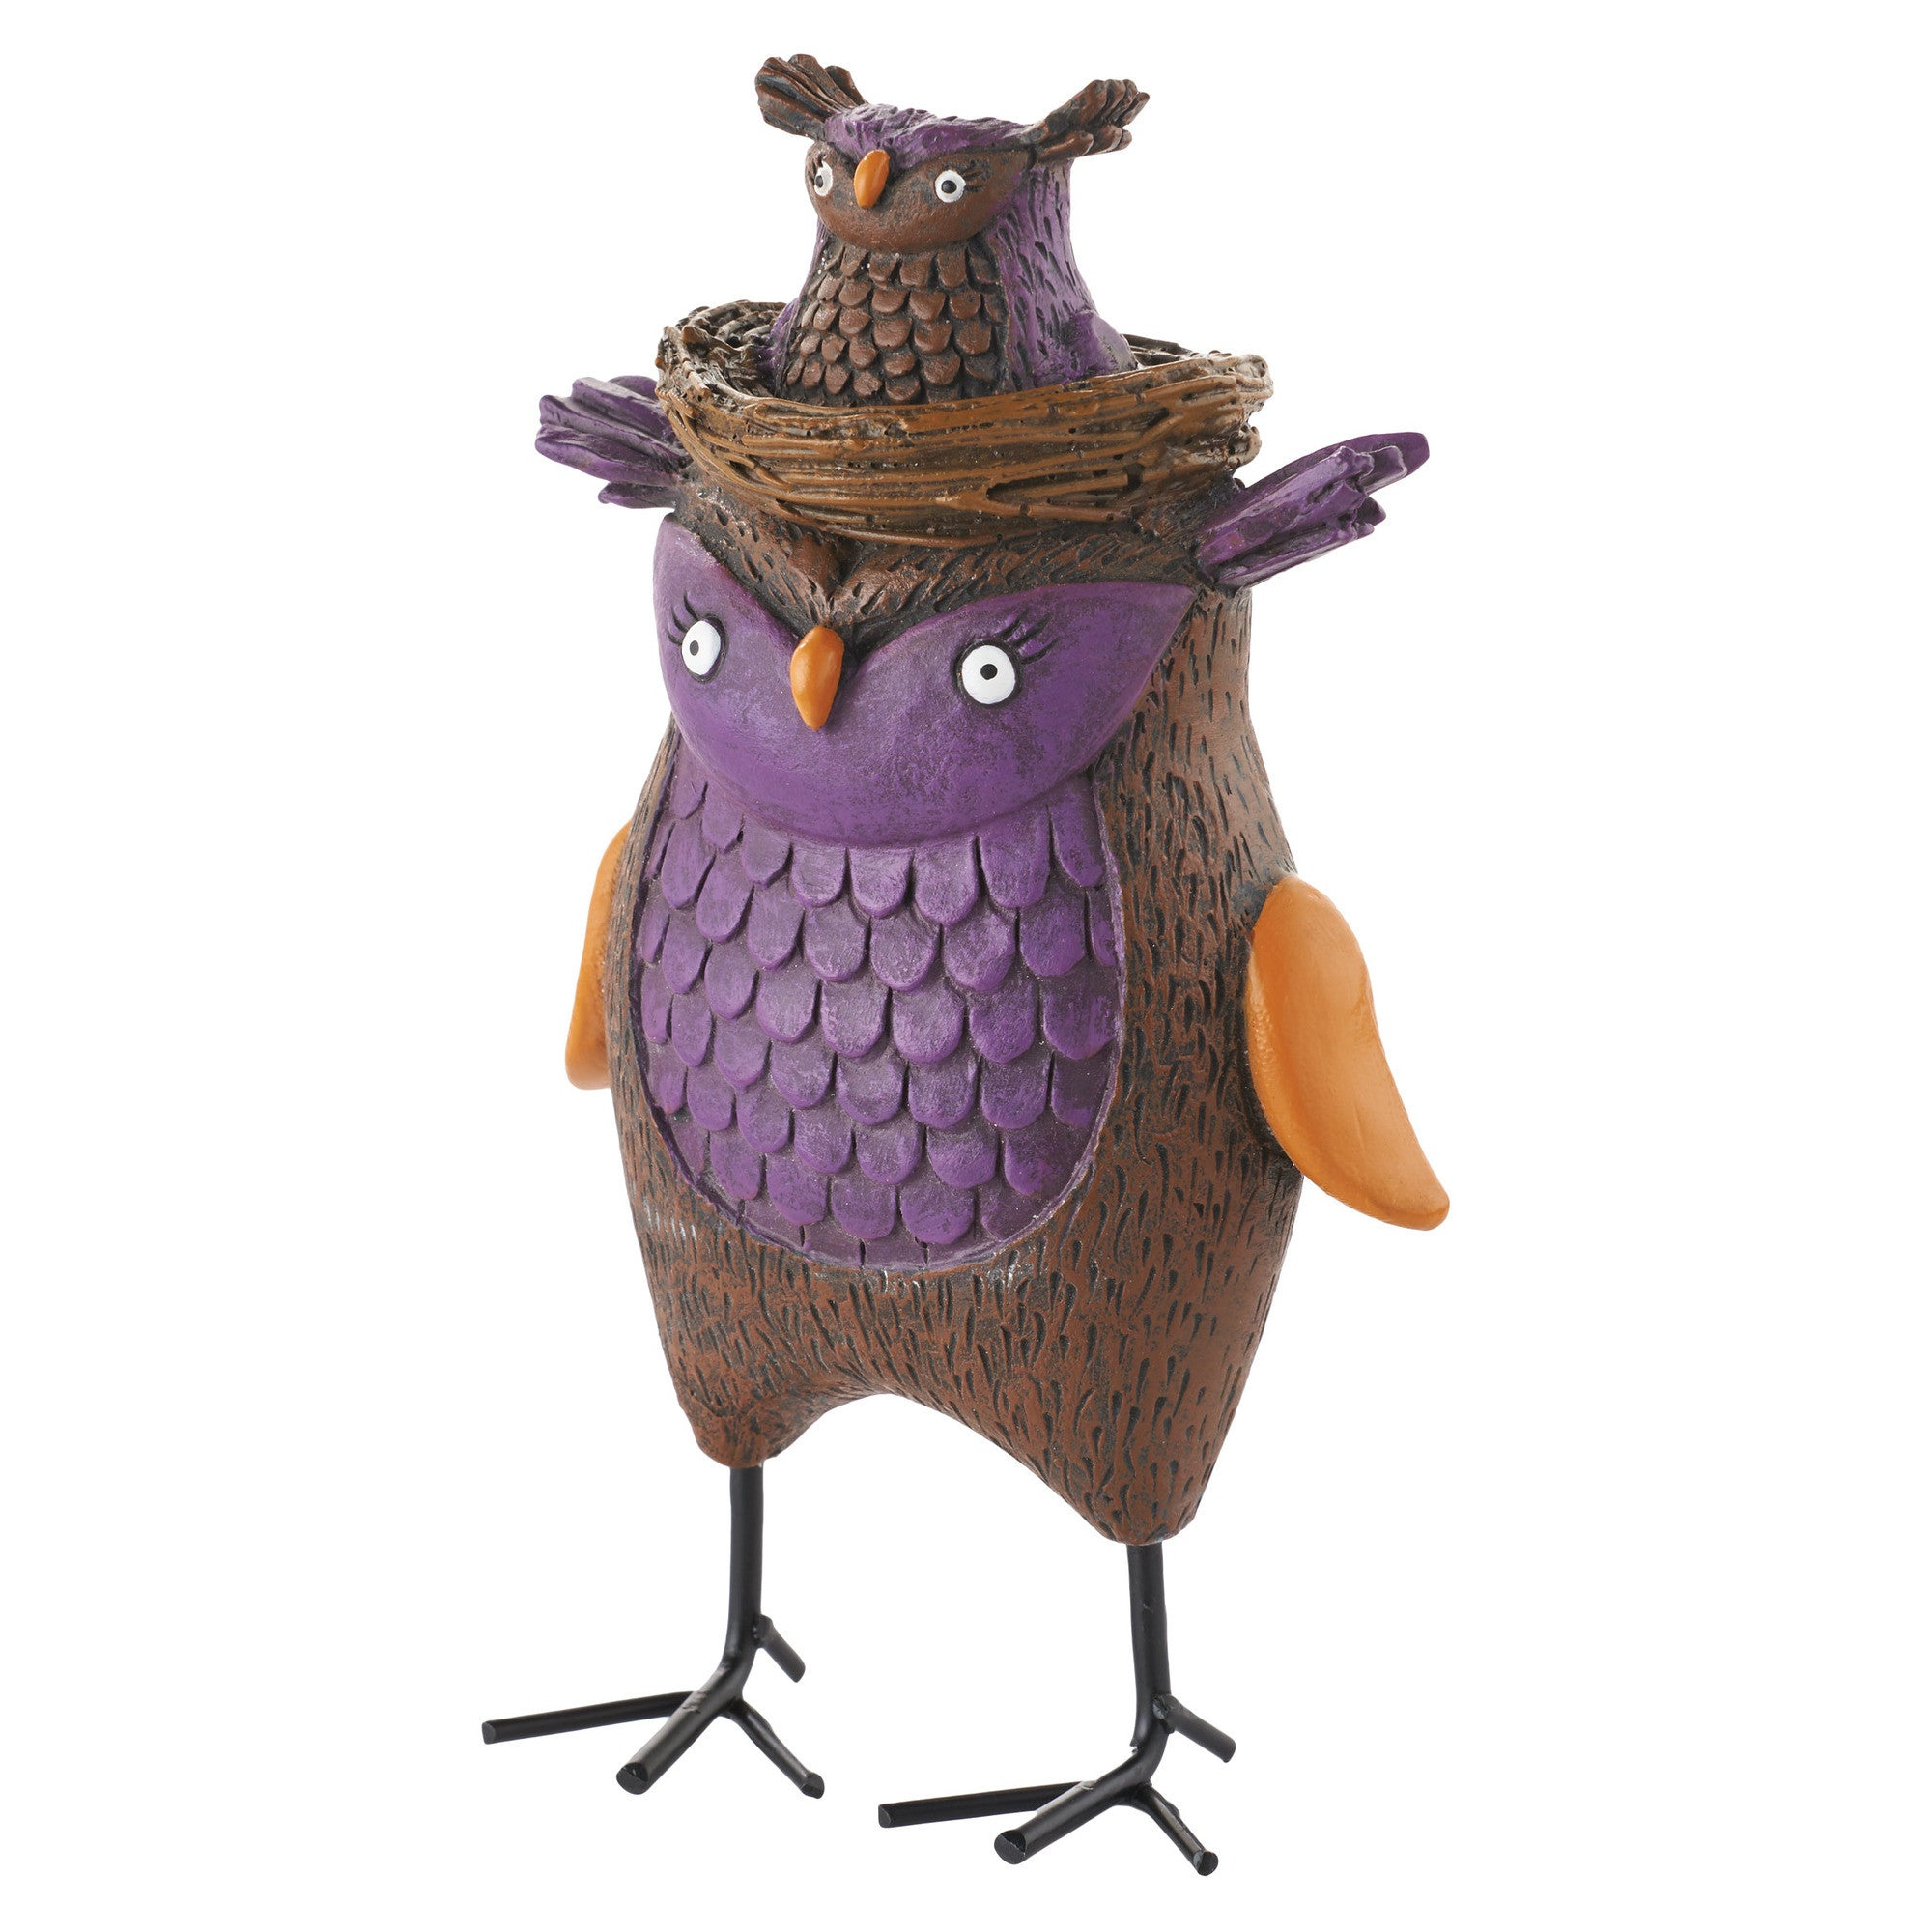 Hoot & Holler Owl Figurine by Department 56